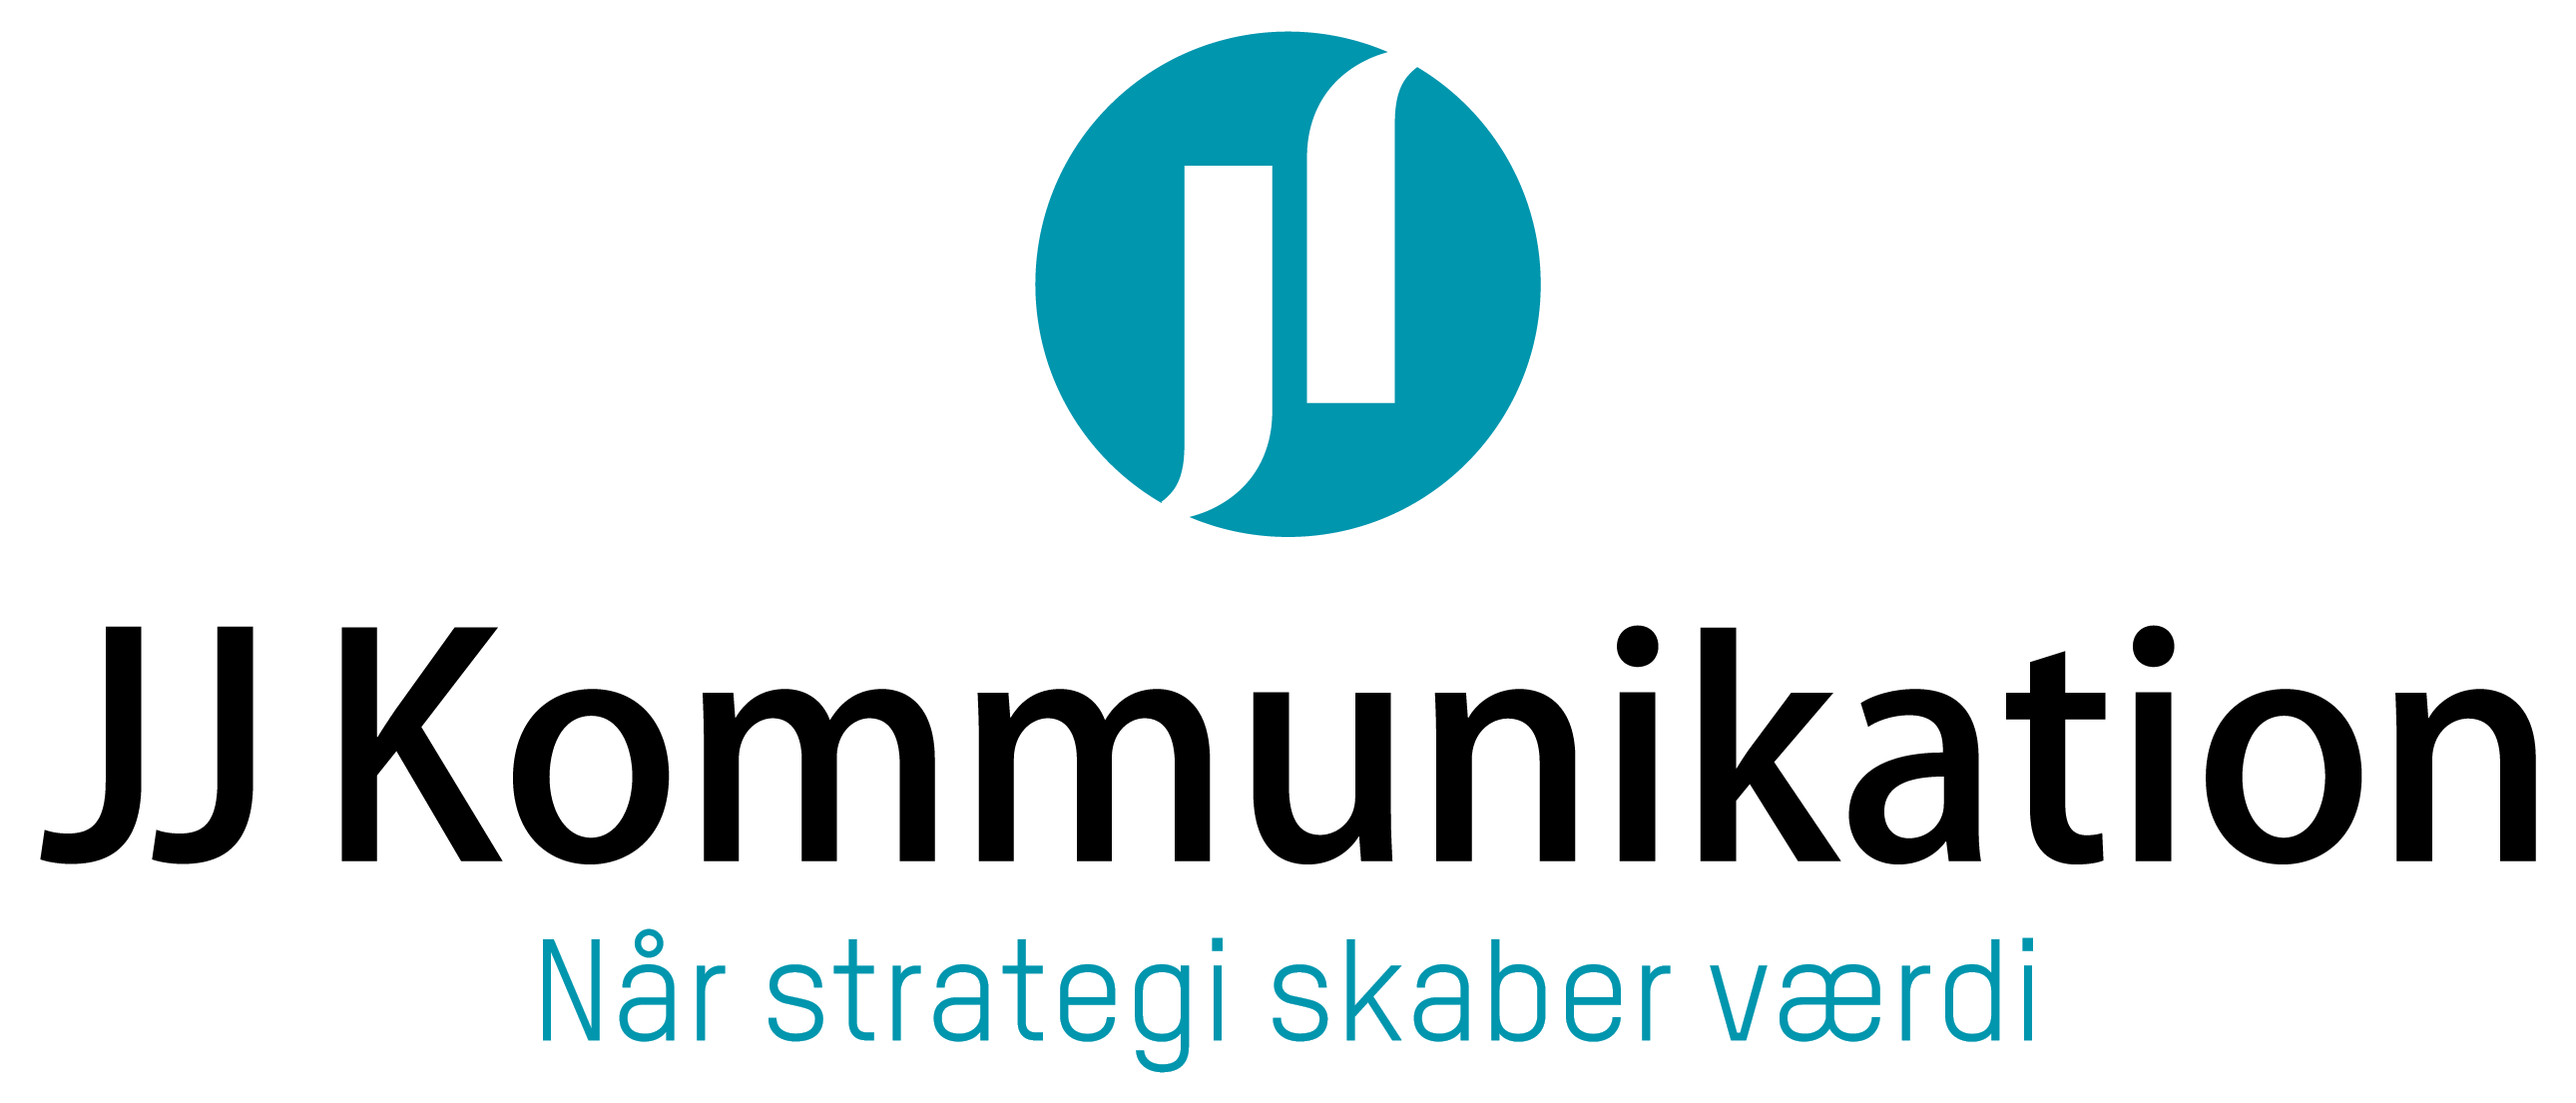 JJ Kommunikation ApS